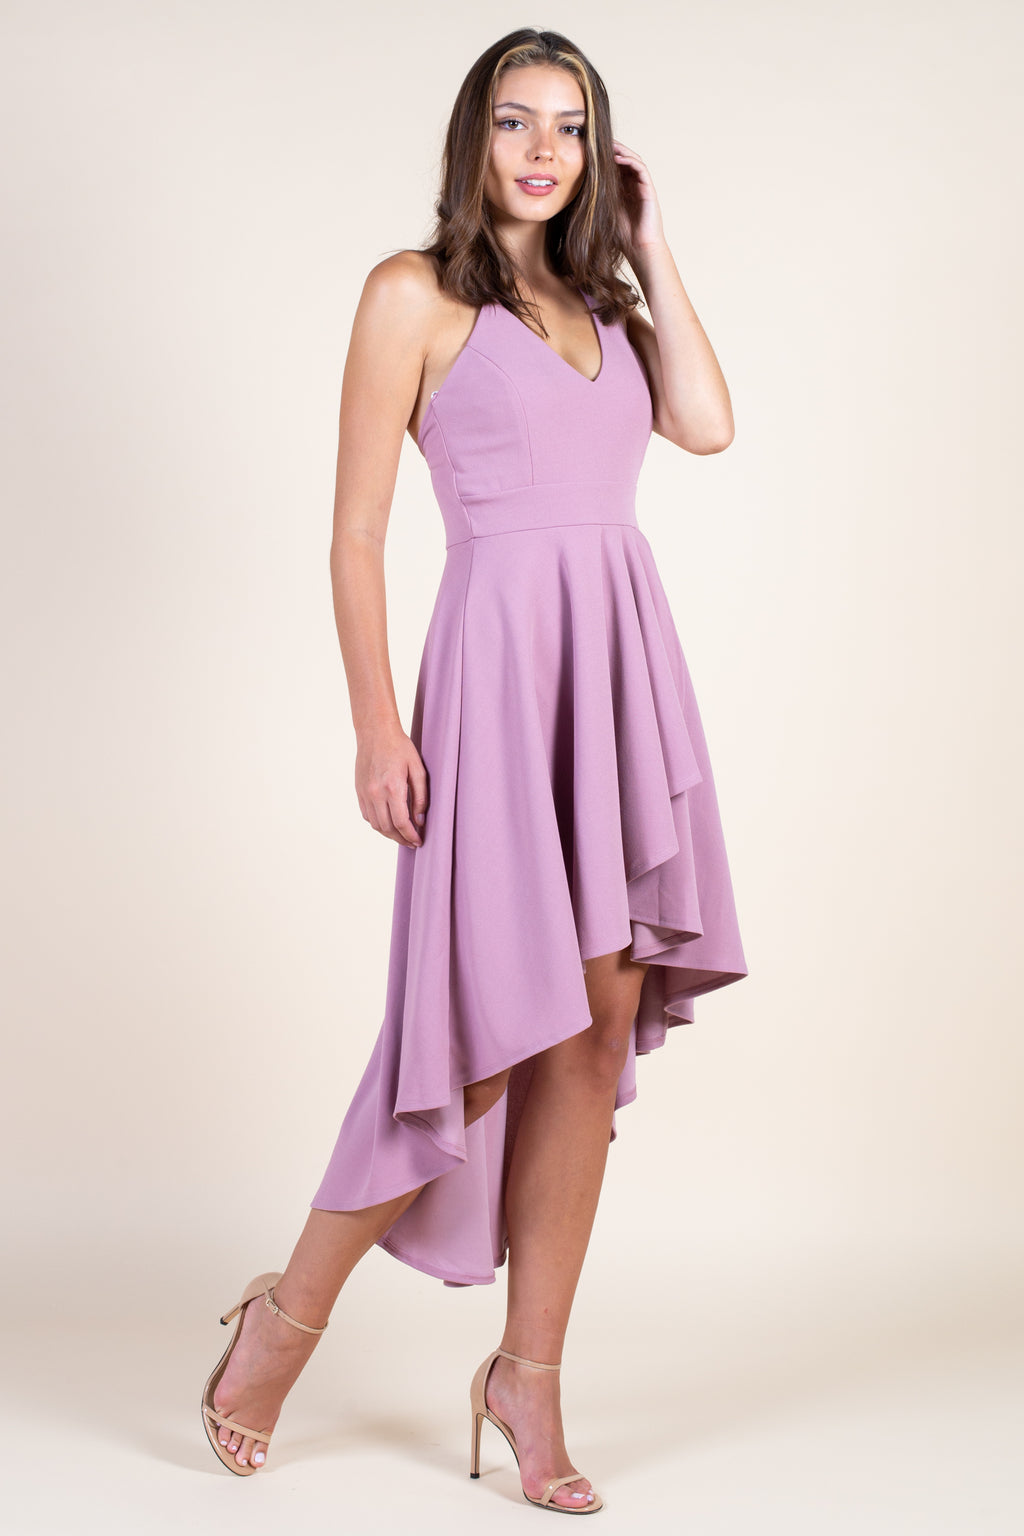 Believe in Love Hi-Lo Midi Dress - honey